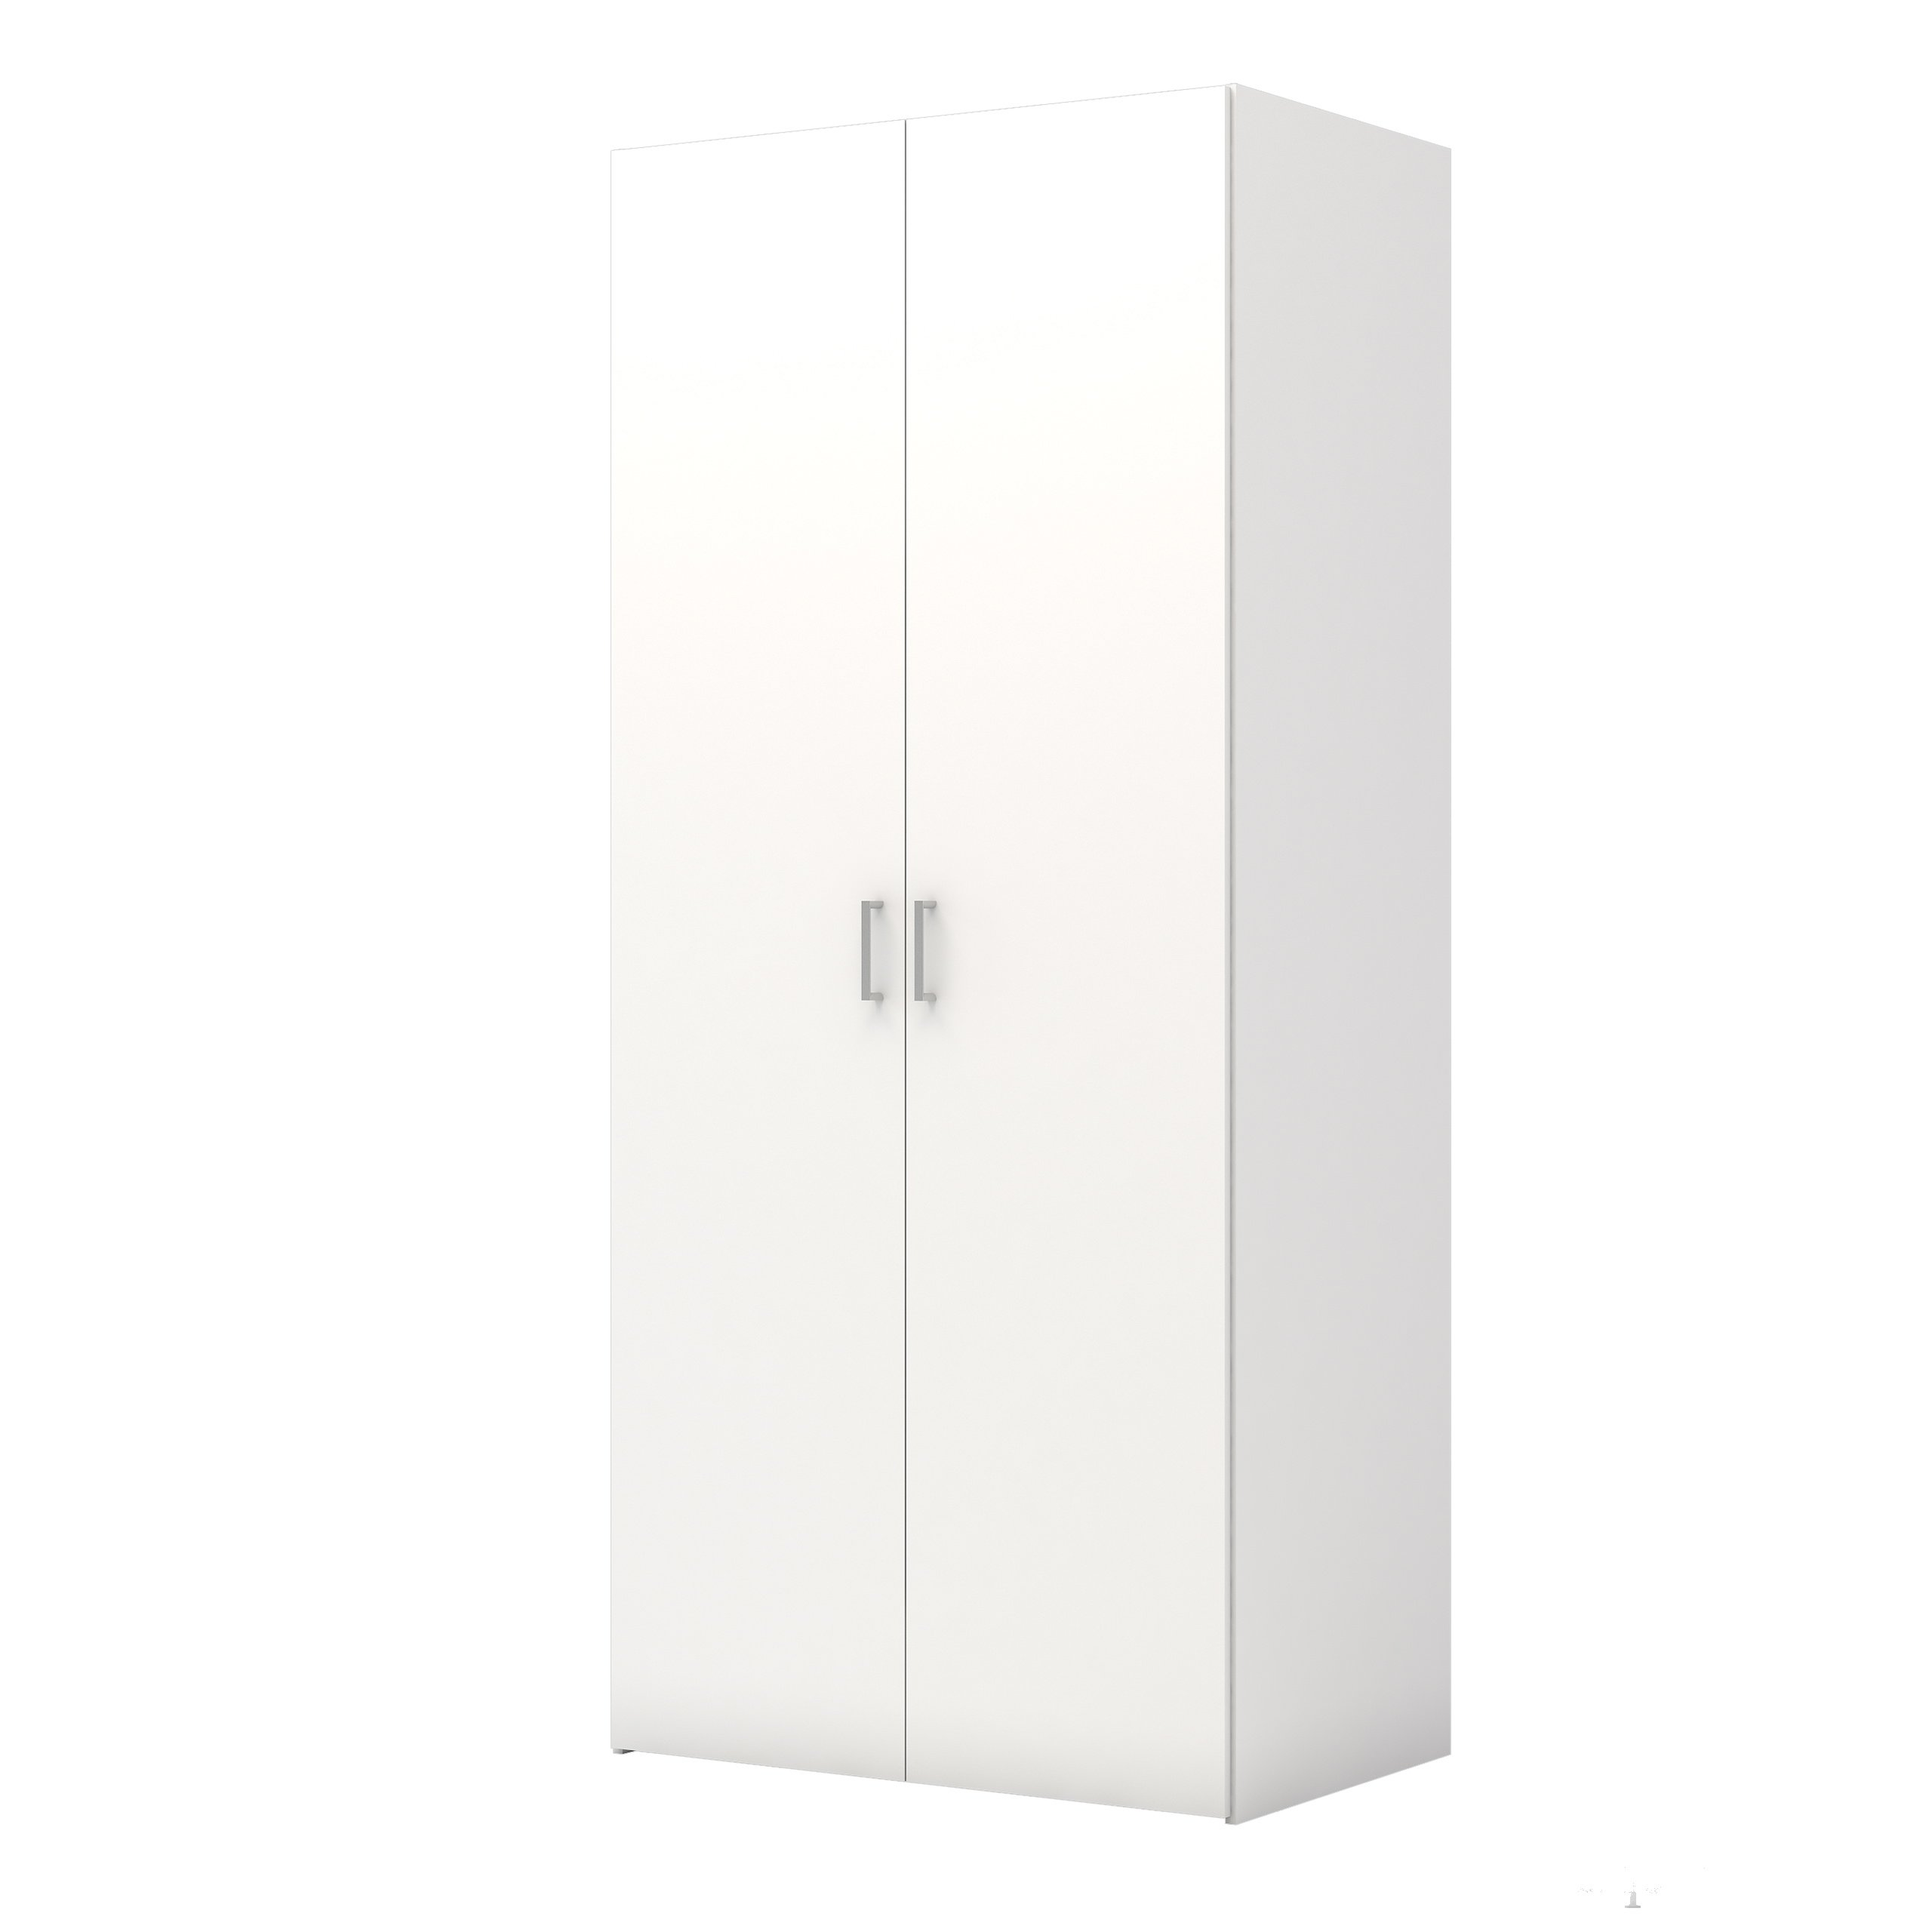 Tvilum 704174949 Space Wardrobe with with 2 Doors, White